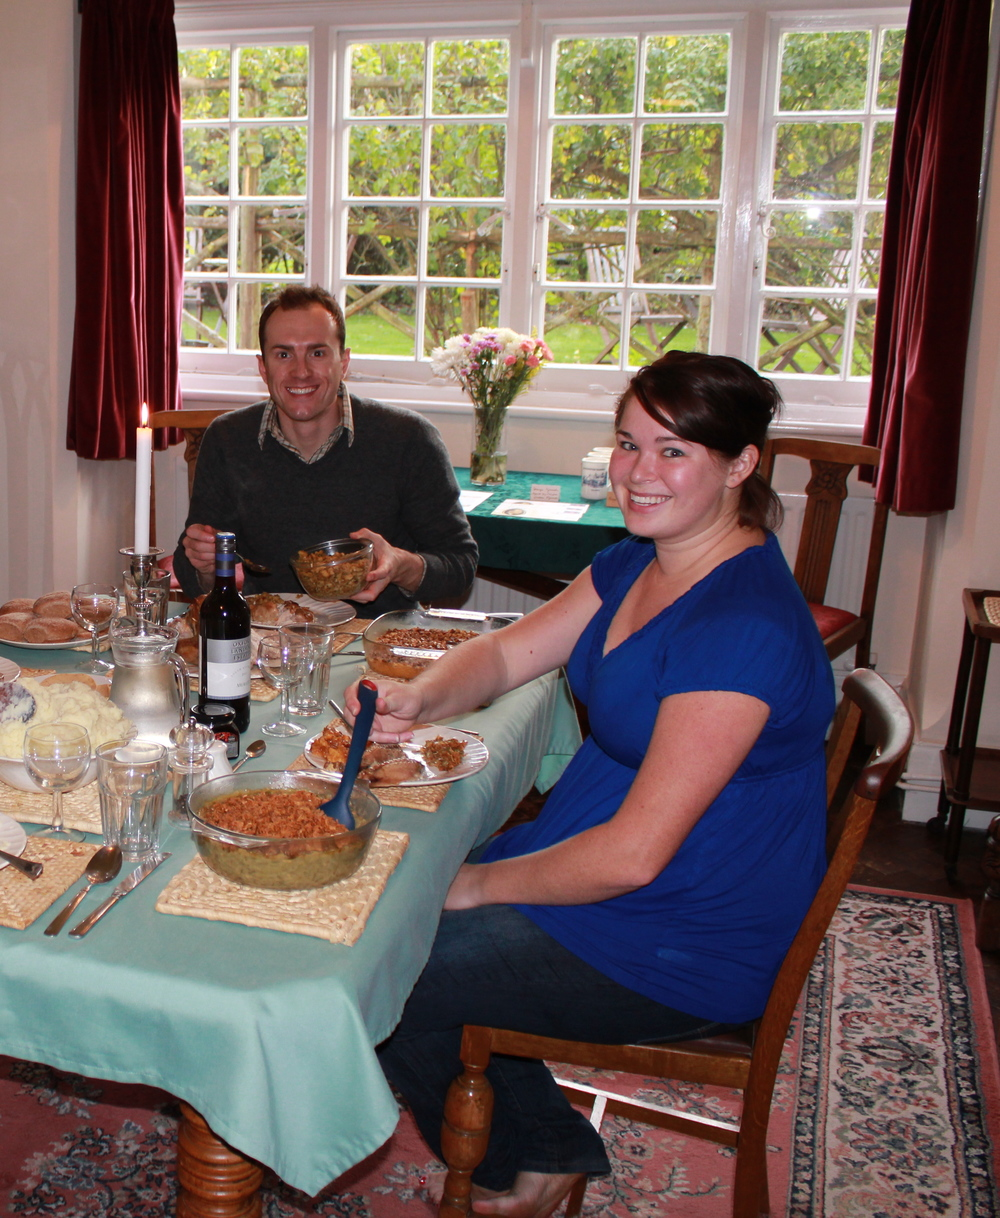 Thanksgiving at the Kilns - Ryan and Jen Pemberton - Nov 2011.JPG